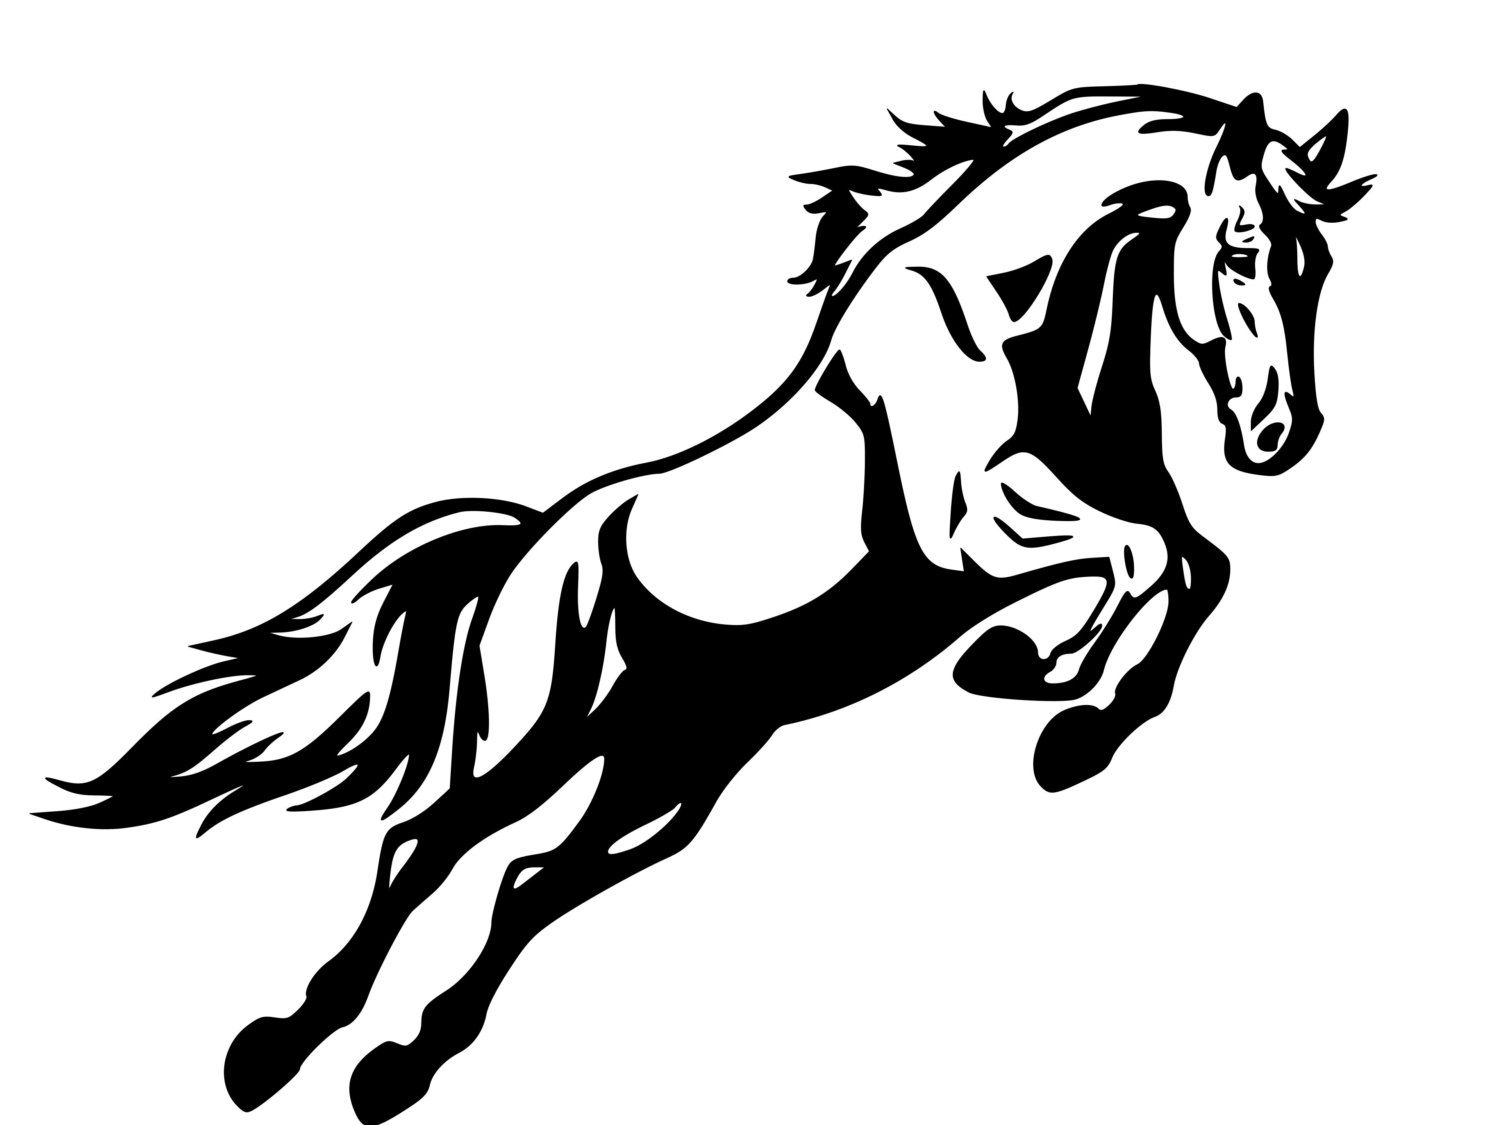 horse clipart silhouette - Go - Horse Clipart